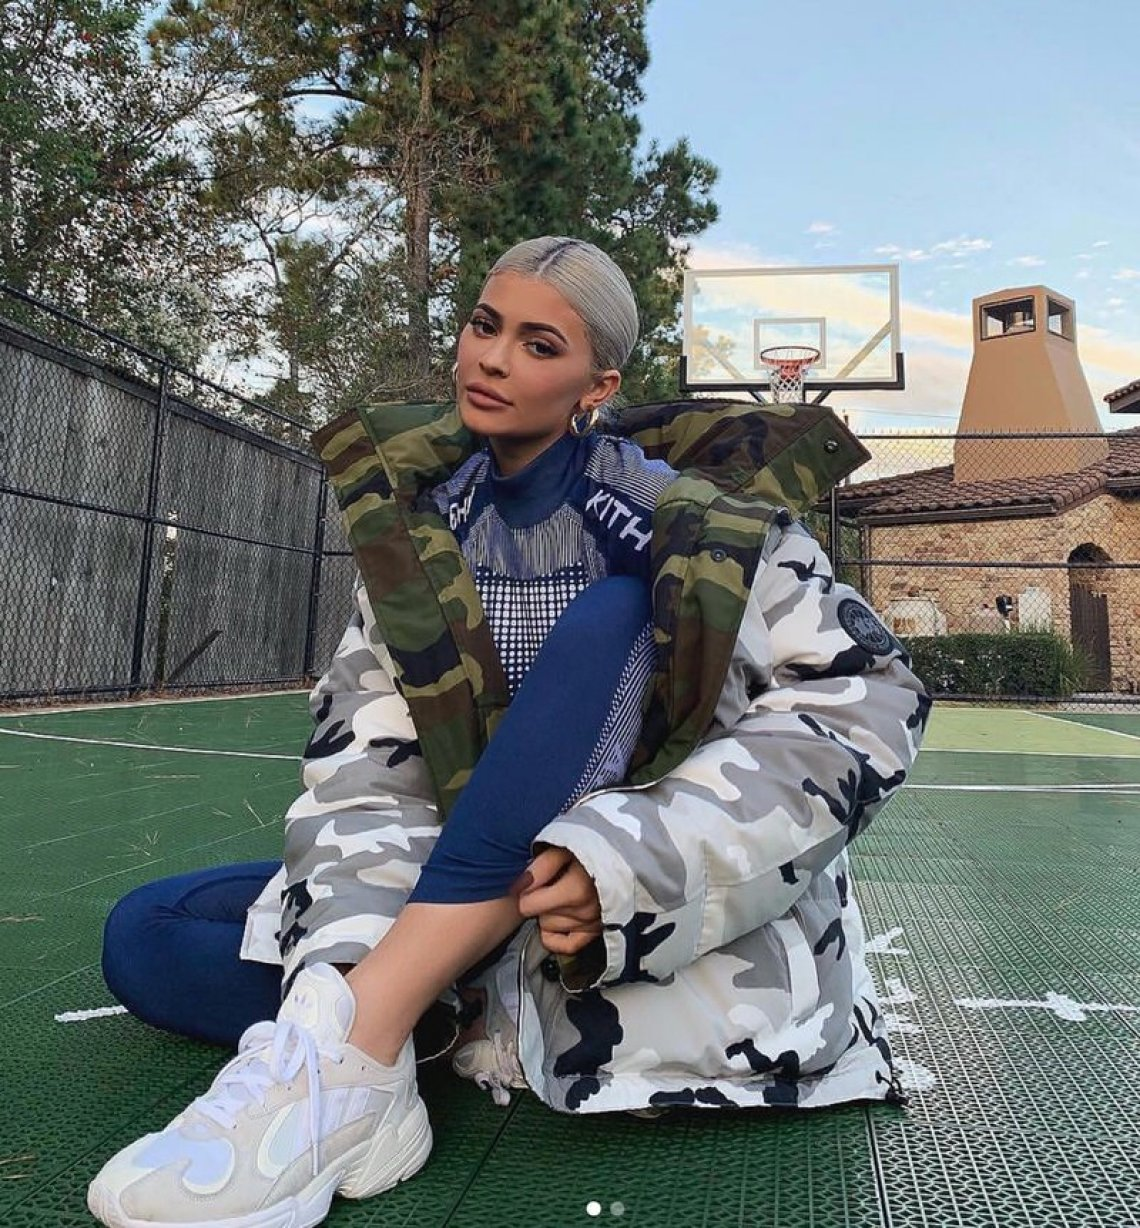 Kylie Jenner in the adidas Yung 1